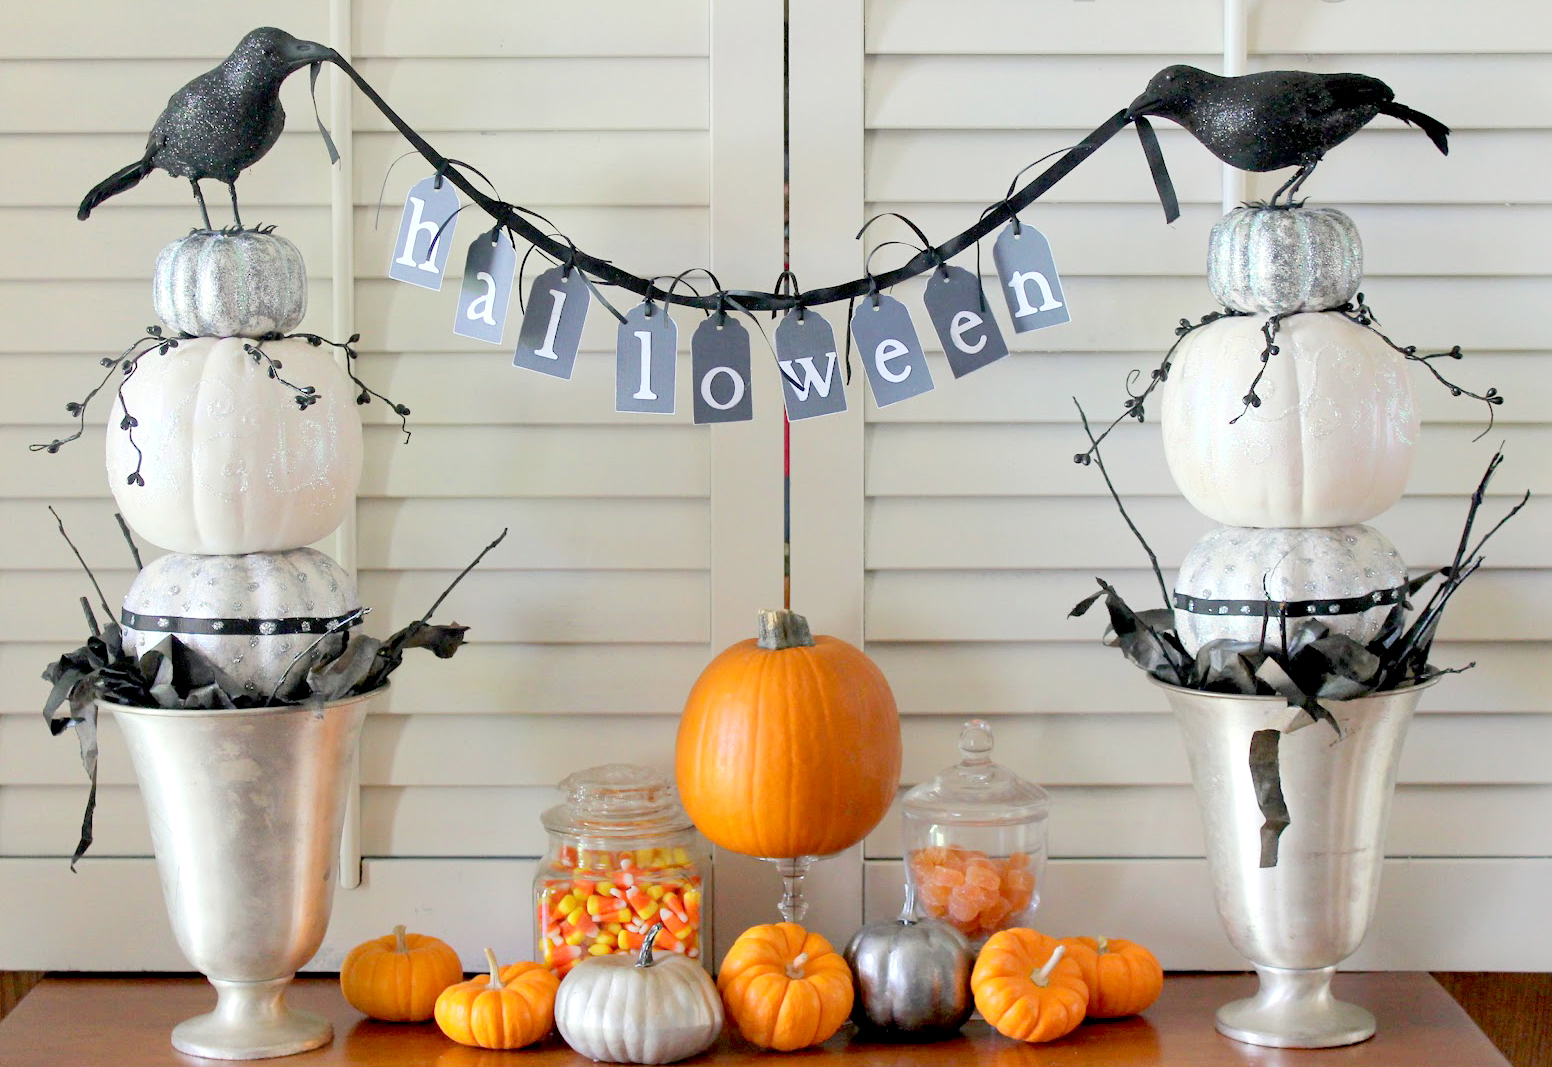 DIY Pumpkin Topiaries for Halloween